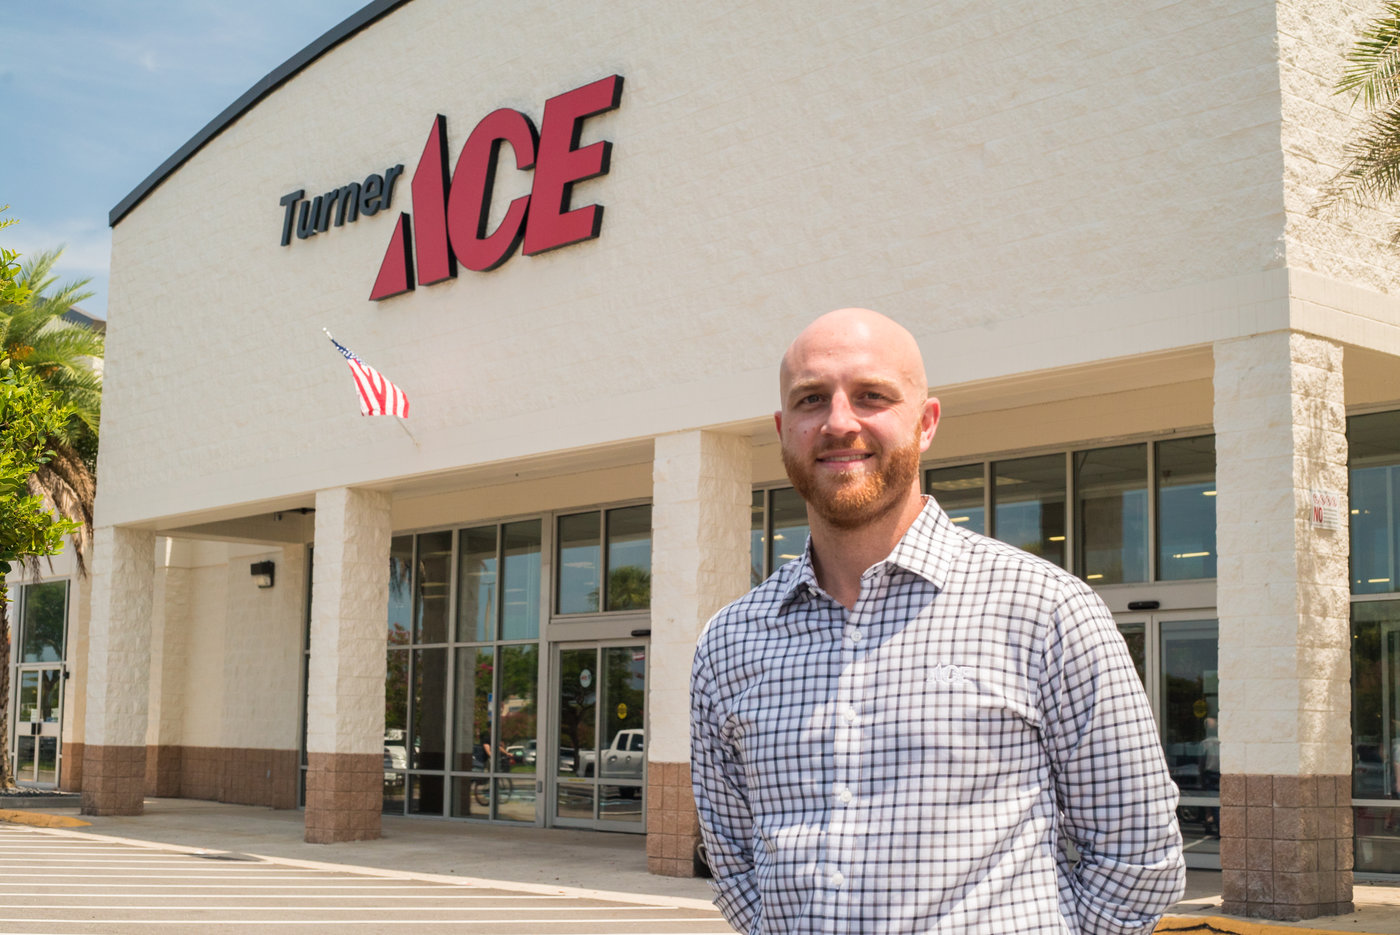 Kyle Turner is a fourth-generation family member involved in Turner Ace Hardware in the Jacksonville area.